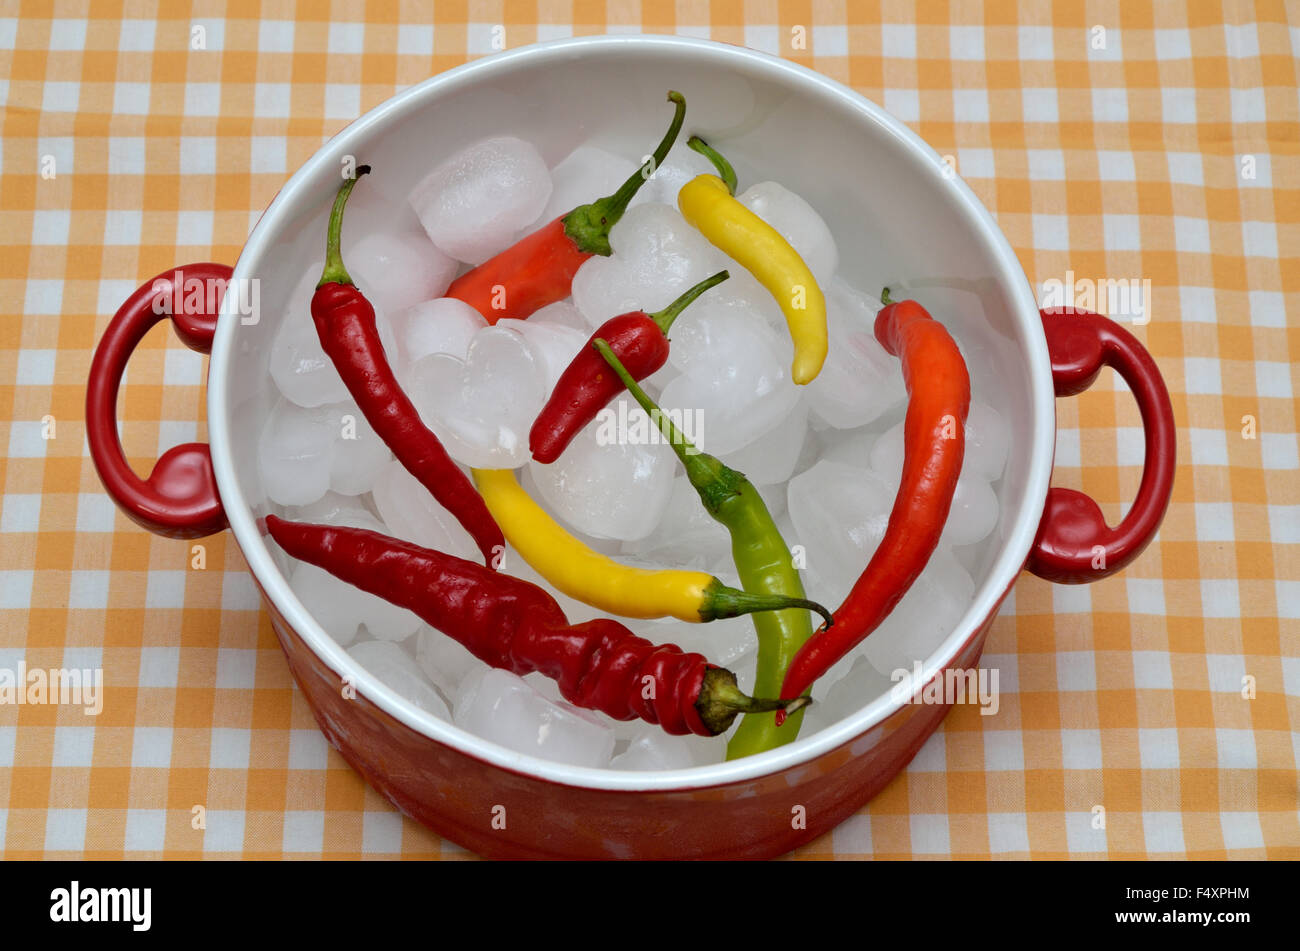 Red, Orange, Green And Yellow Hot Chili Peppers In Red Casserole Full Of  Ice Cubes   On White Yellow Tablecloth